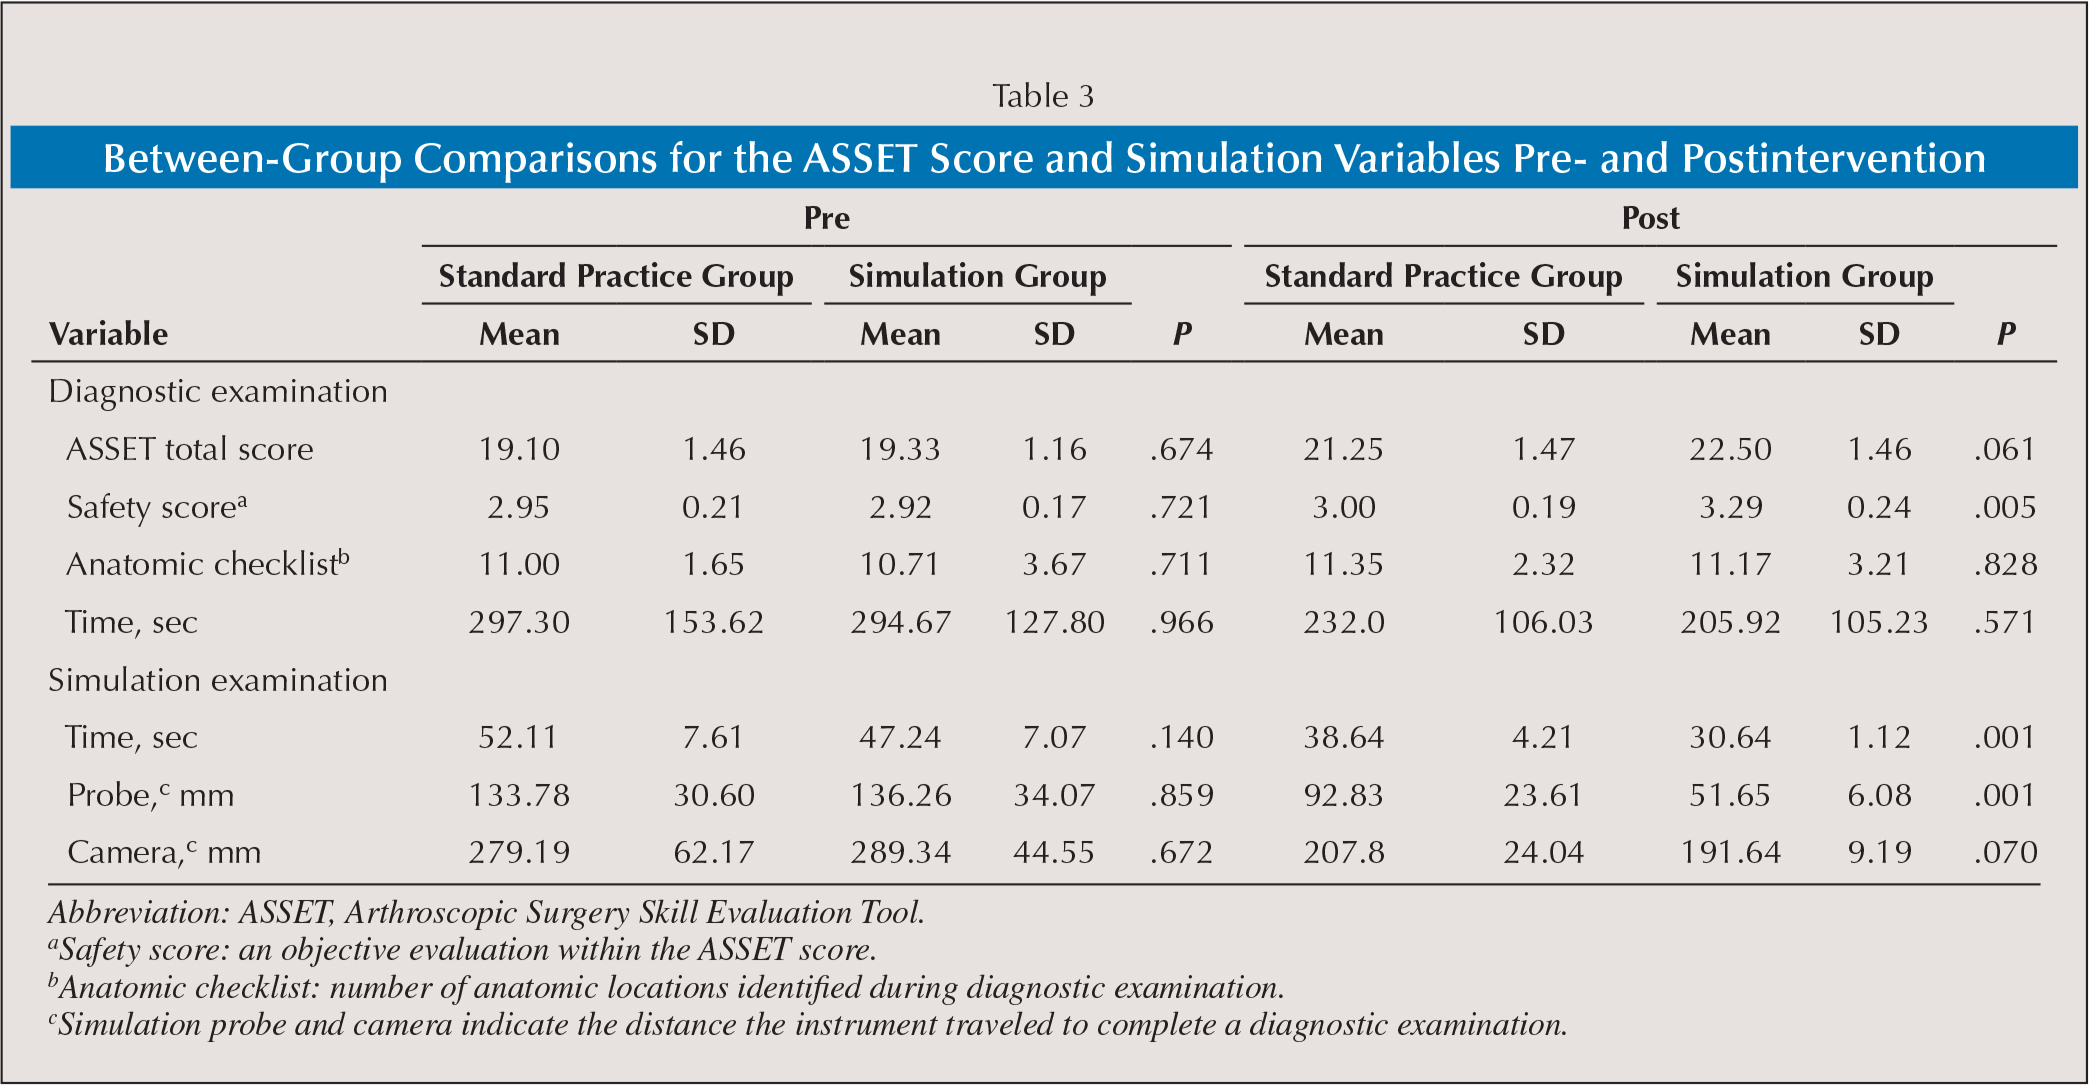 Between-Group Comparisons for the ASSET Score and Simulation Variables Pre- and Postintervention